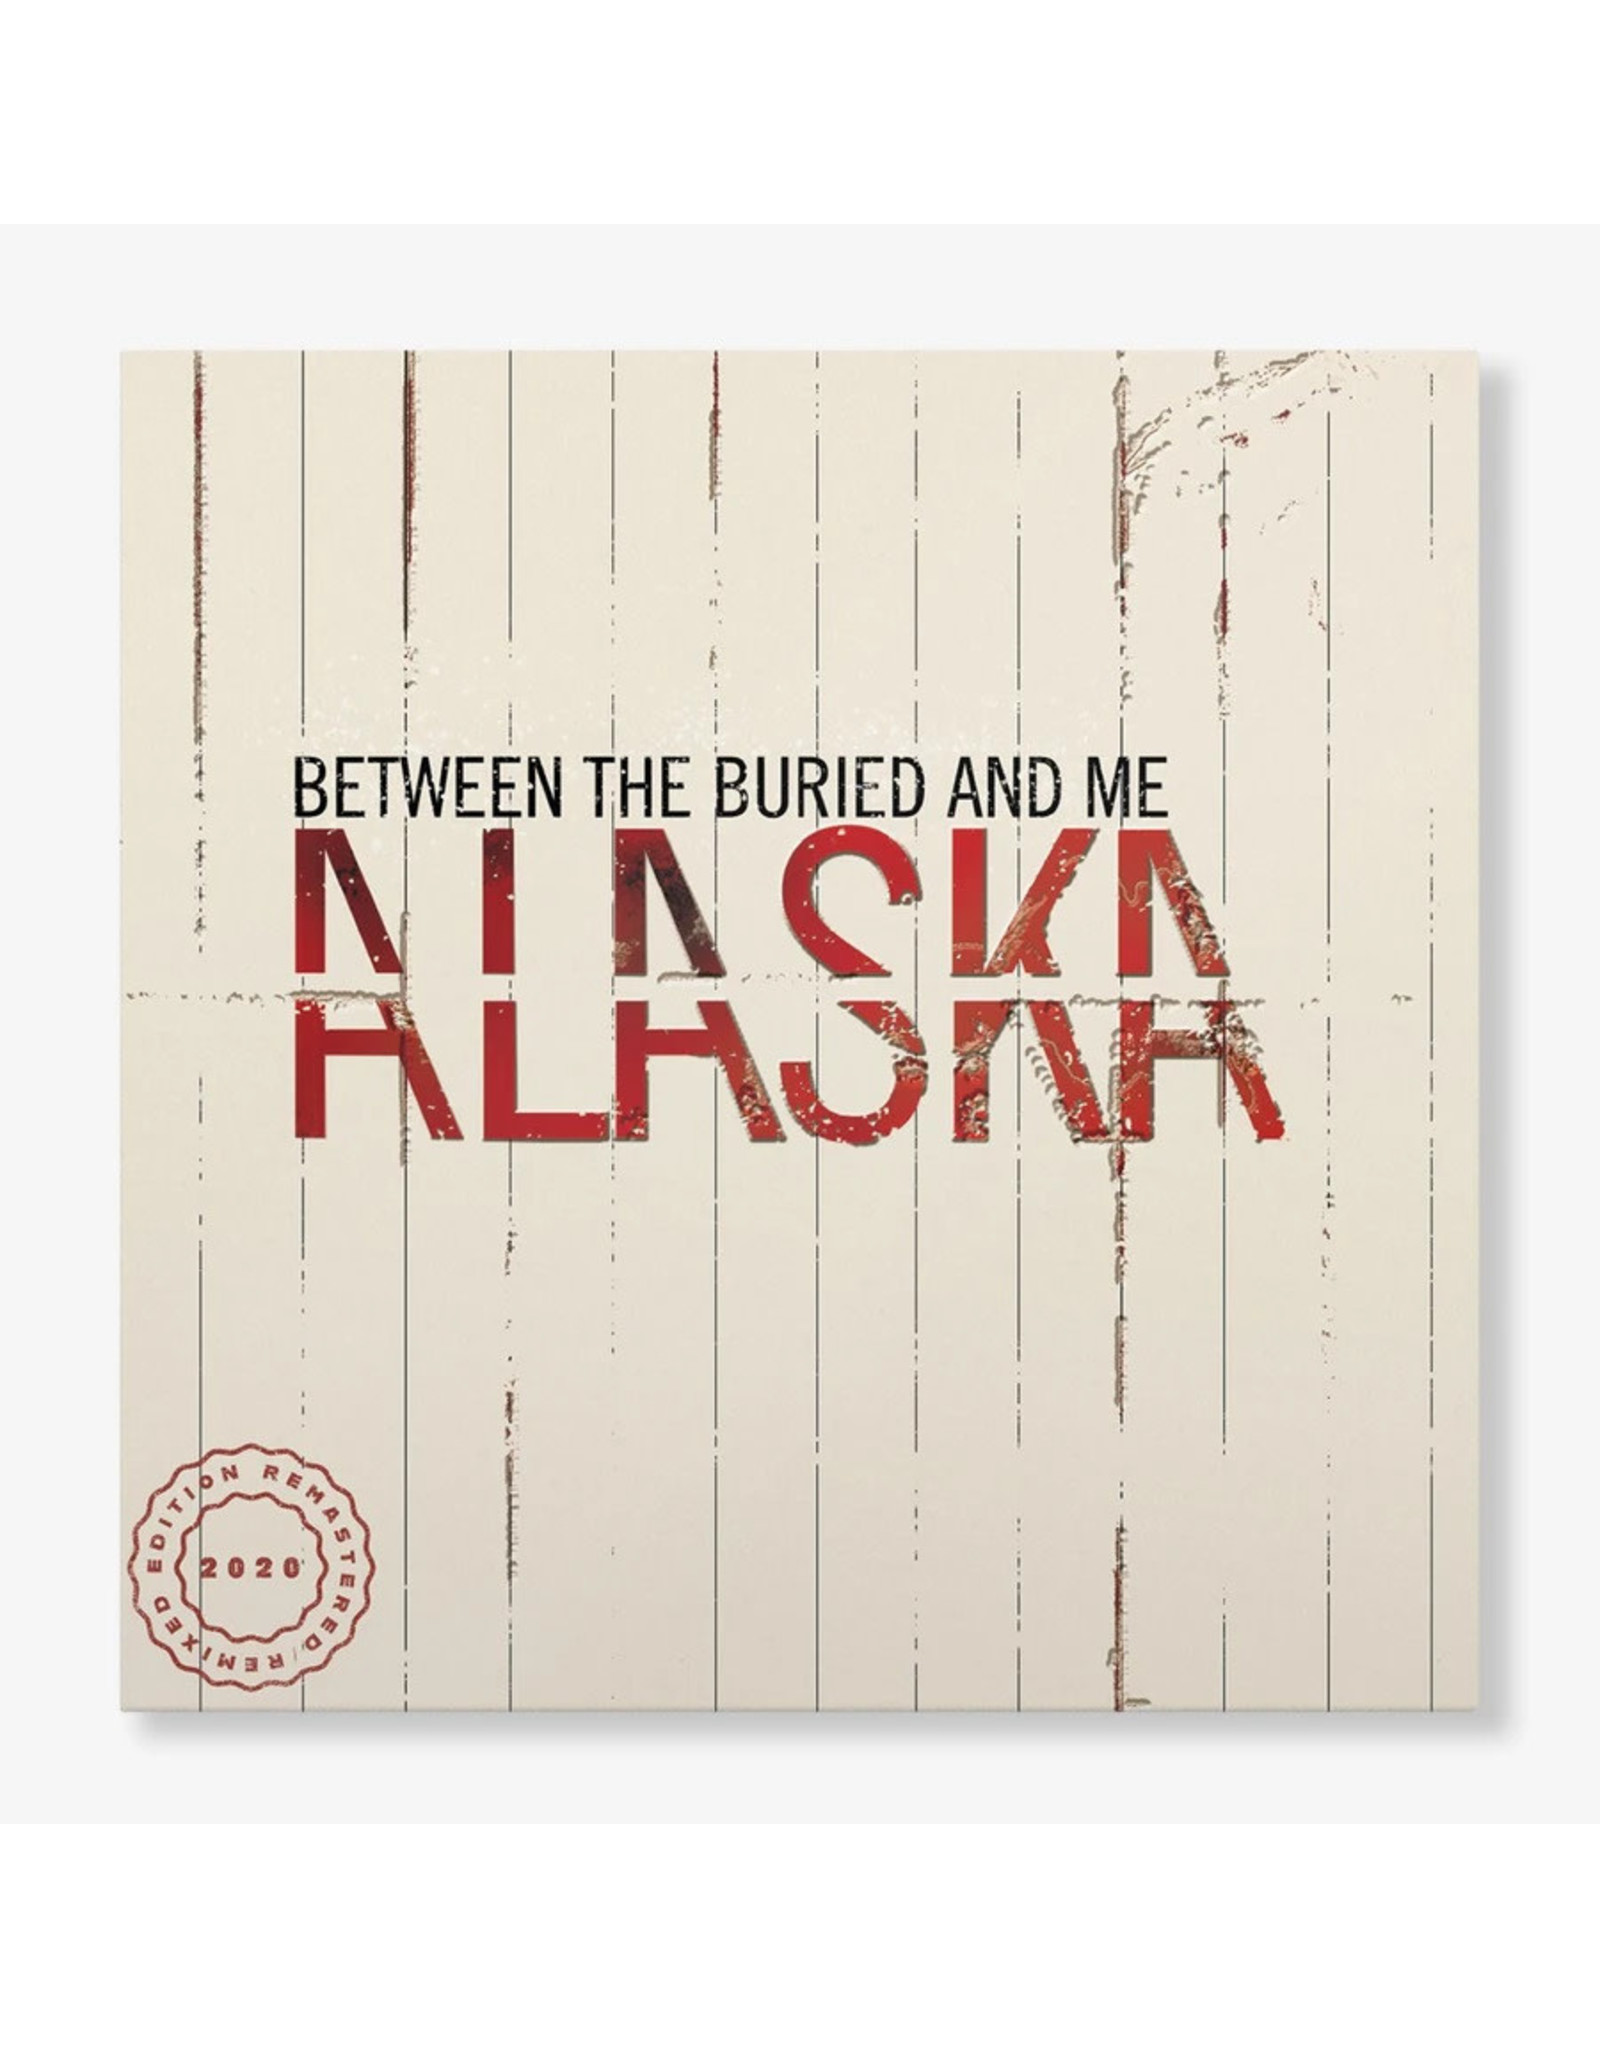 Between the Buried and Me - Alaska (2LP/2020 remix/remaster)